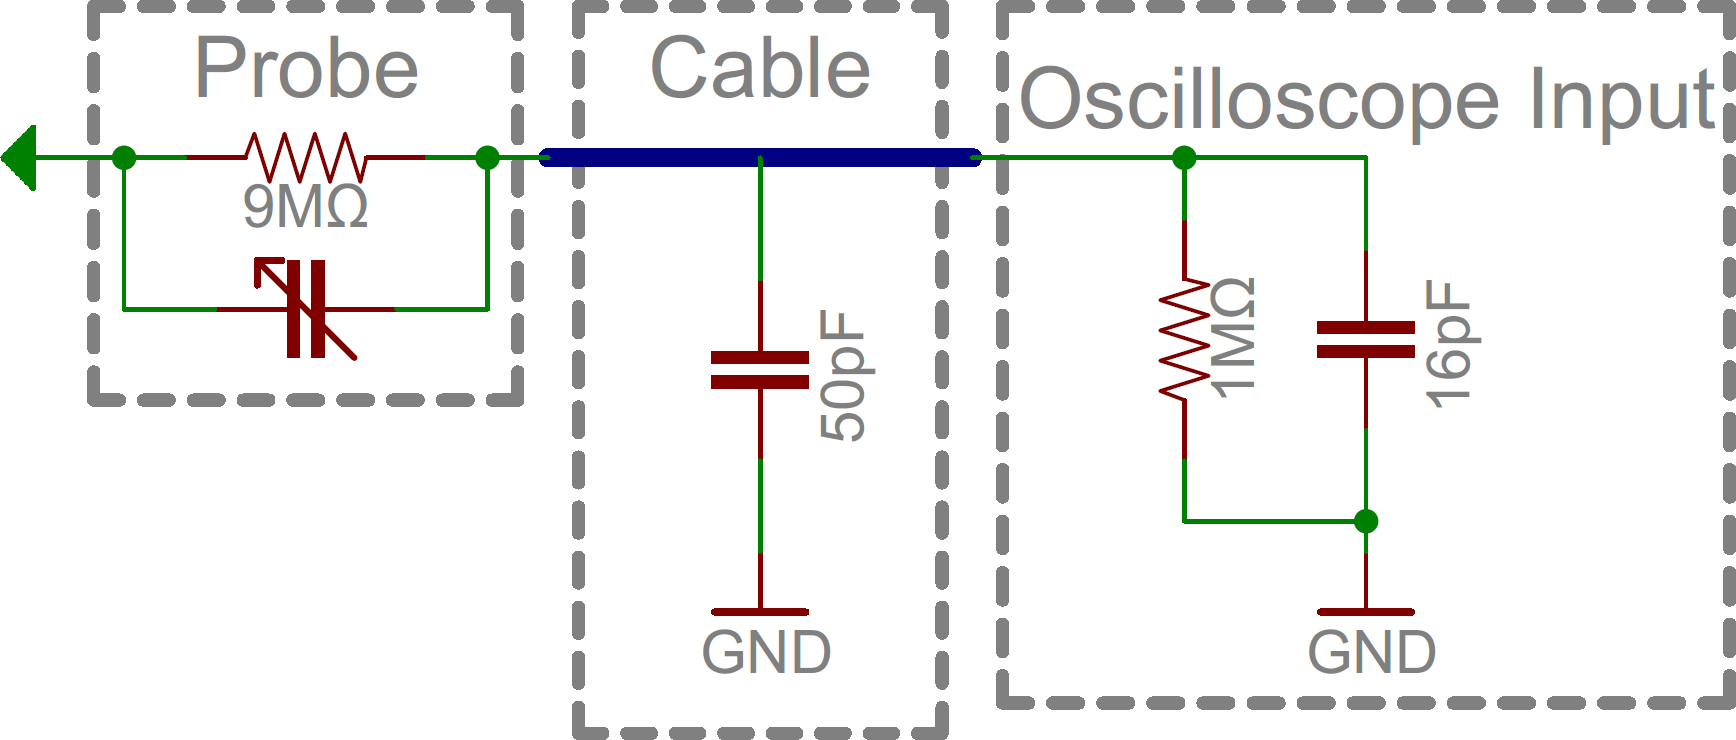 How To Use An Oscilloscope Iv Wiring And The Frequency Inverter Setting Simplified Schematic Of Probe Transmission Wire Scope Input